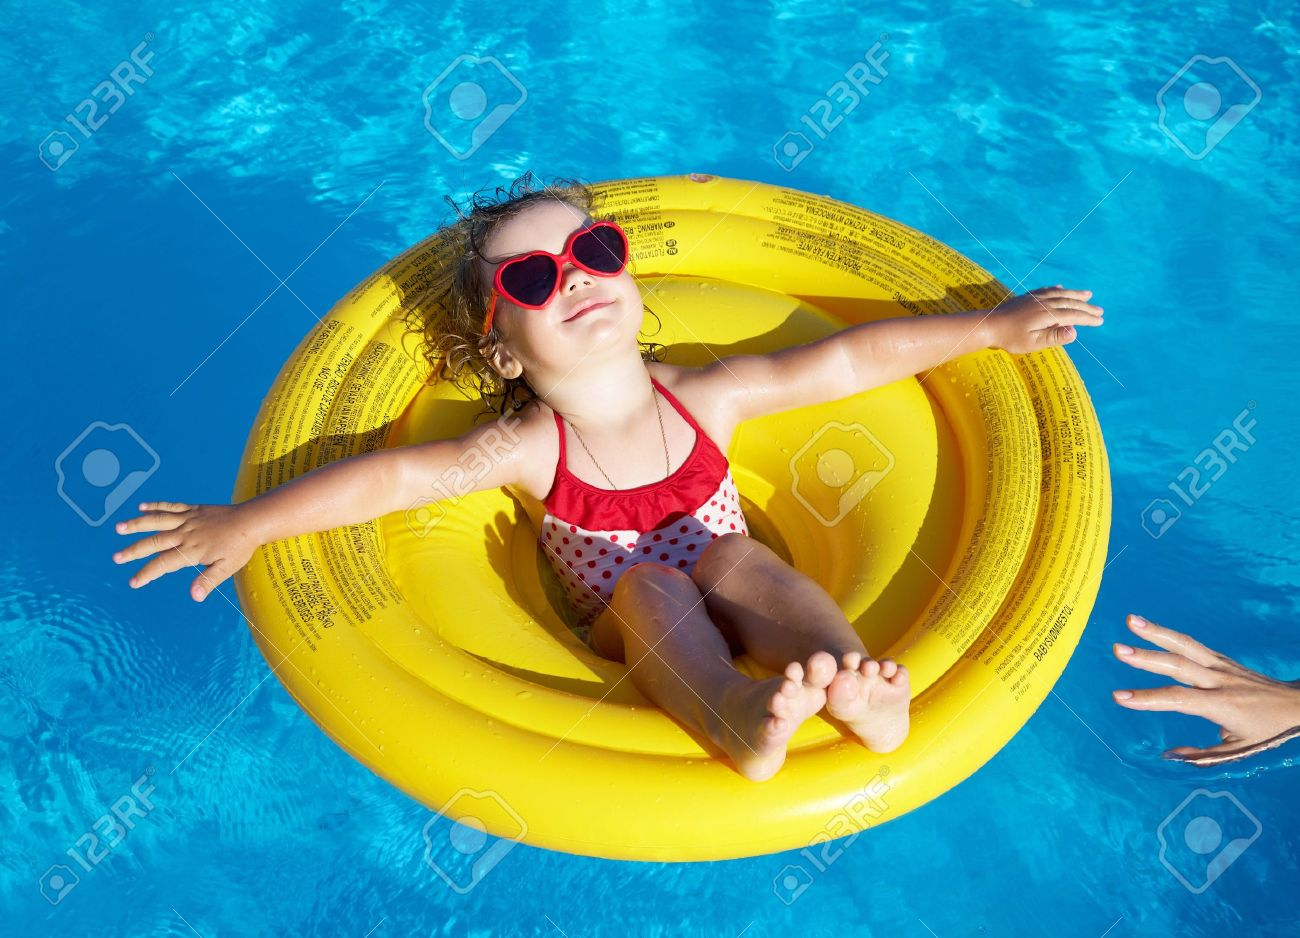 Funny little girl swims in a pool in an yellow life preserver - 21606849